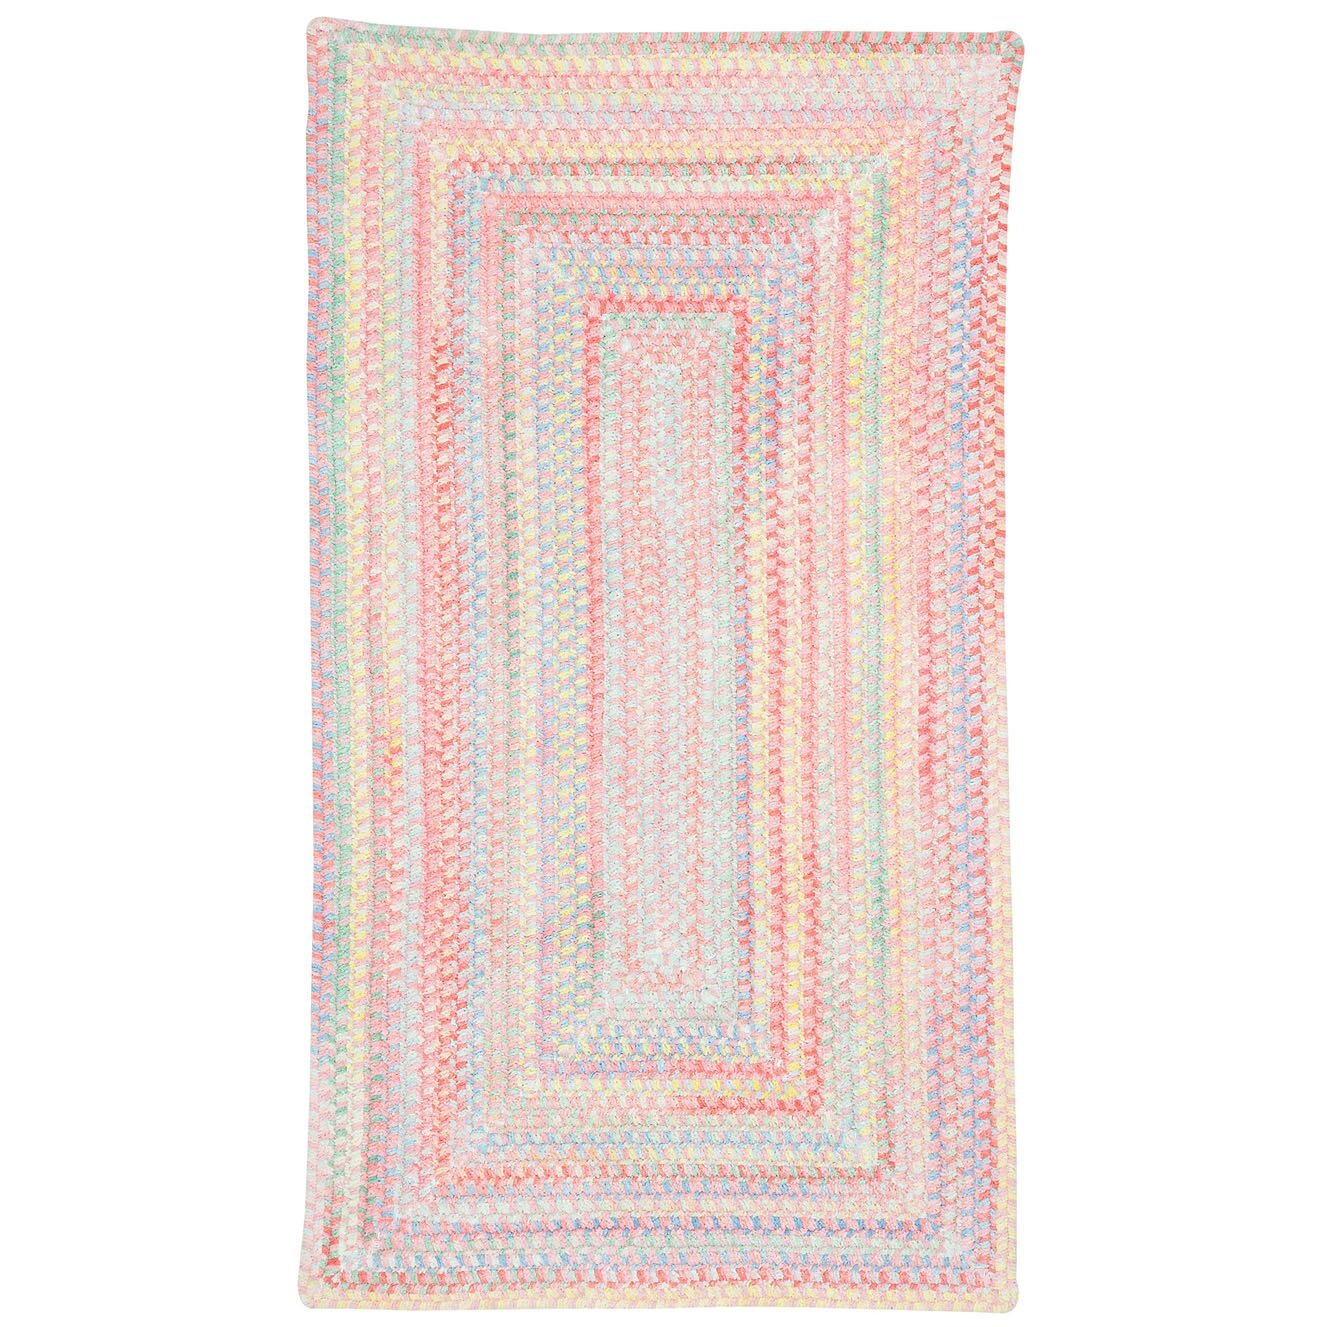 Capel Baby 39 S Breath Tea Rose Kids Area Rug Reviews Wayfair